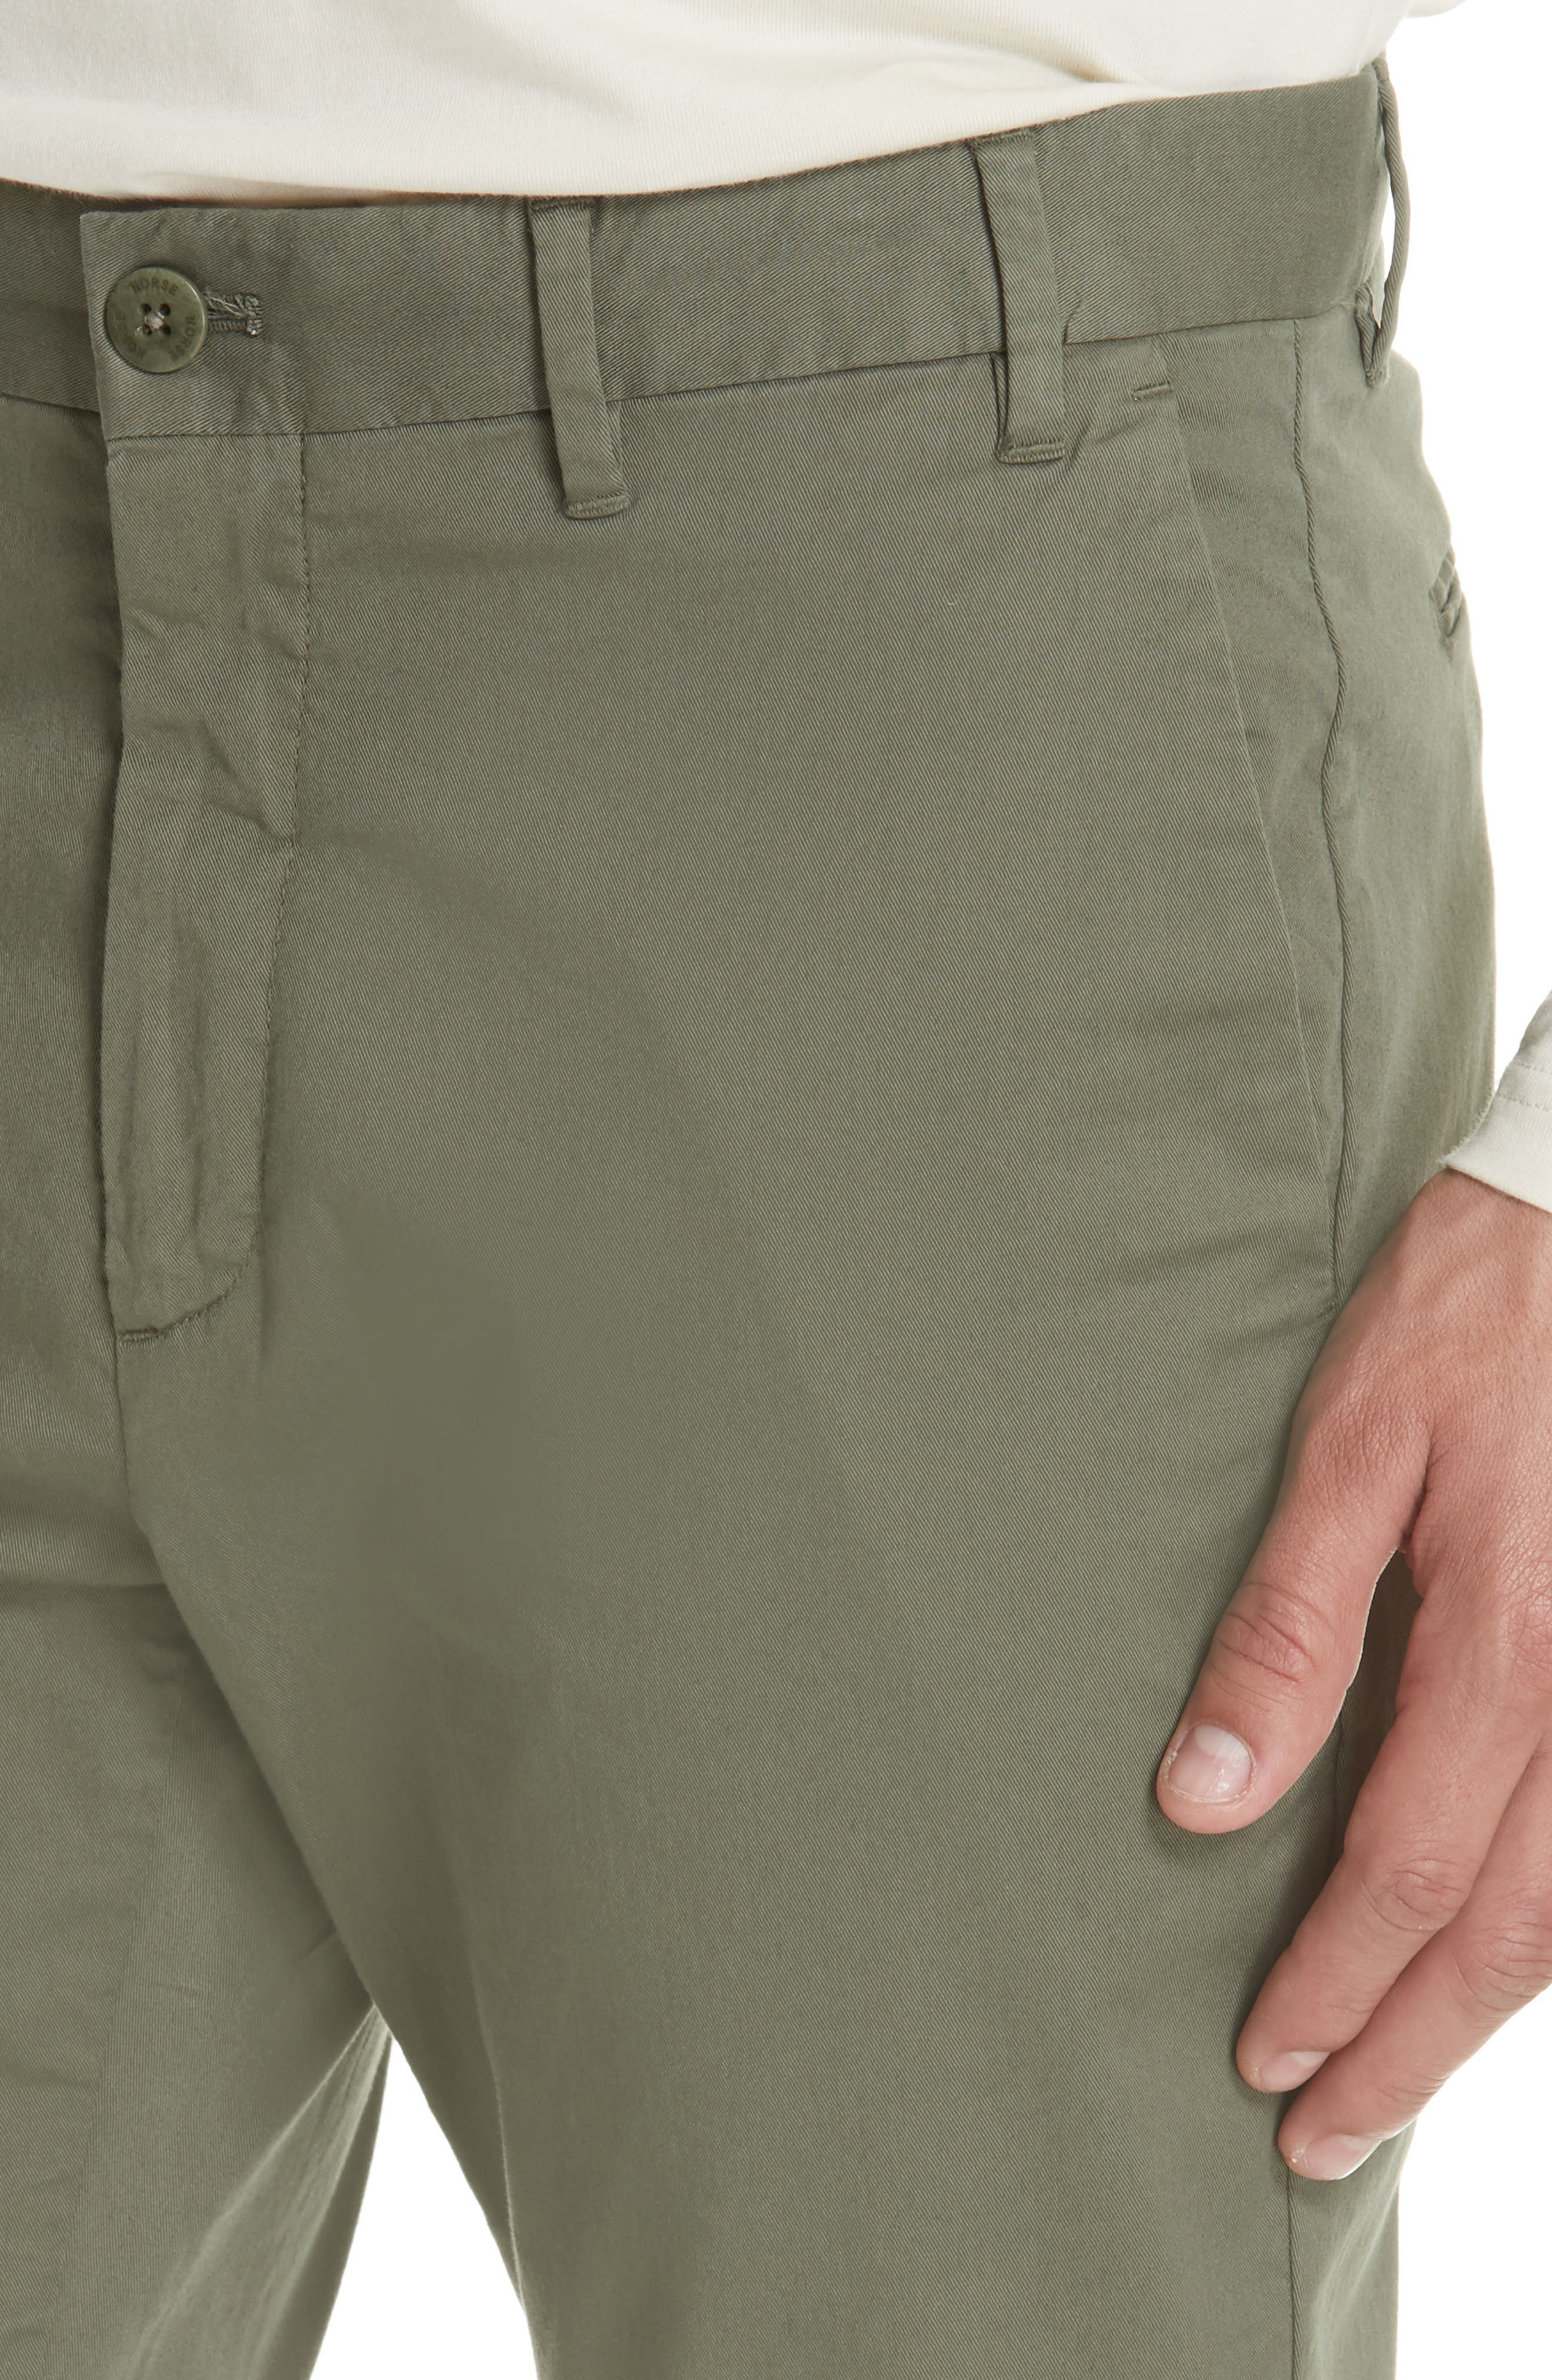 Aros Slim Fit Stretch Twill Pants,                             Alternate thumbnail 4, color,                             DRIED OLIVE